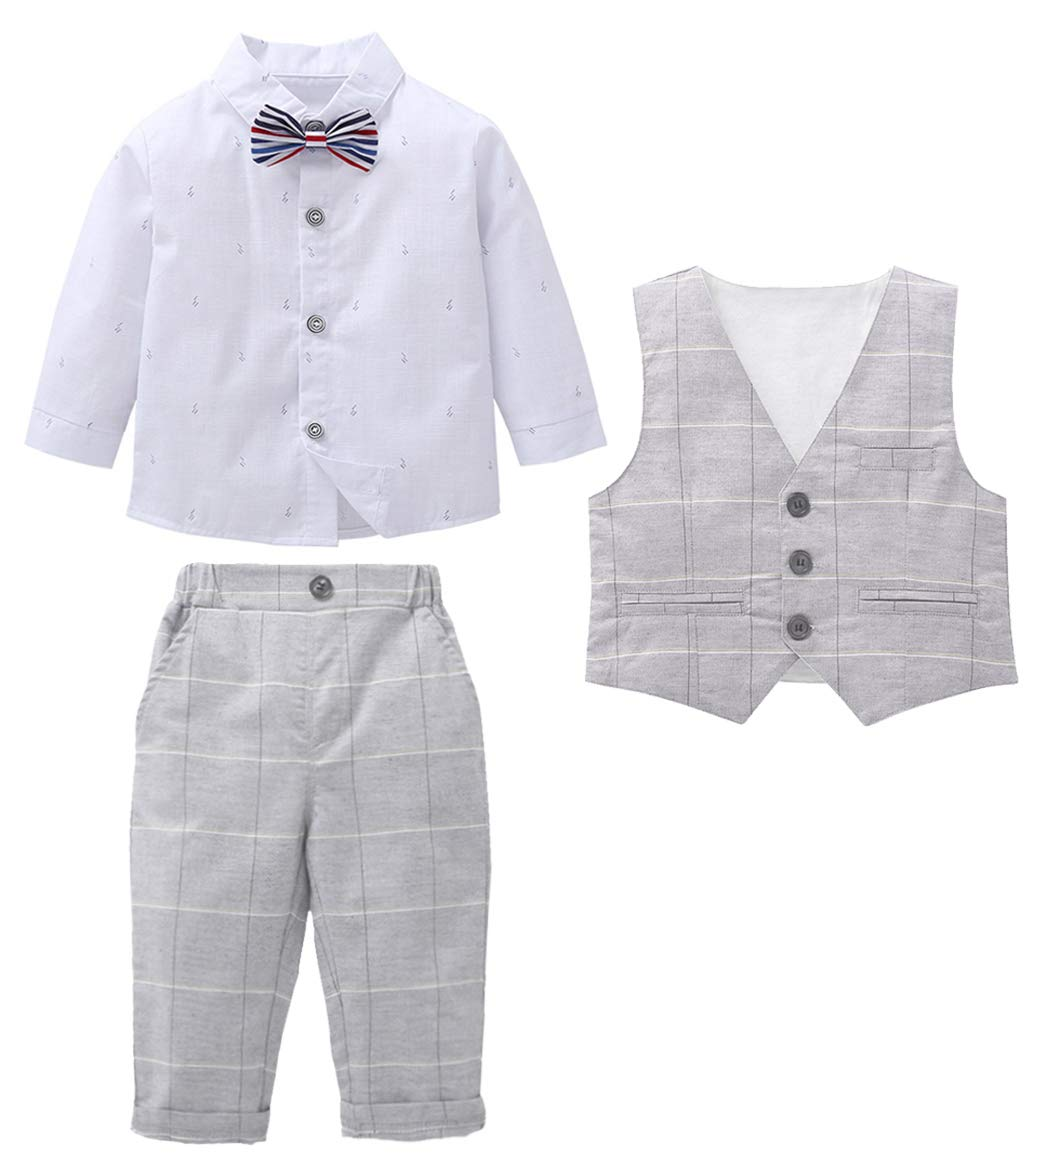 MetCuento Baby Boy Suits Gentleman Wedding Outfit Bow Tie Tuxedo White Shirt Formal Wear Dress Suit 3T(2-3 Years) by MetCuento